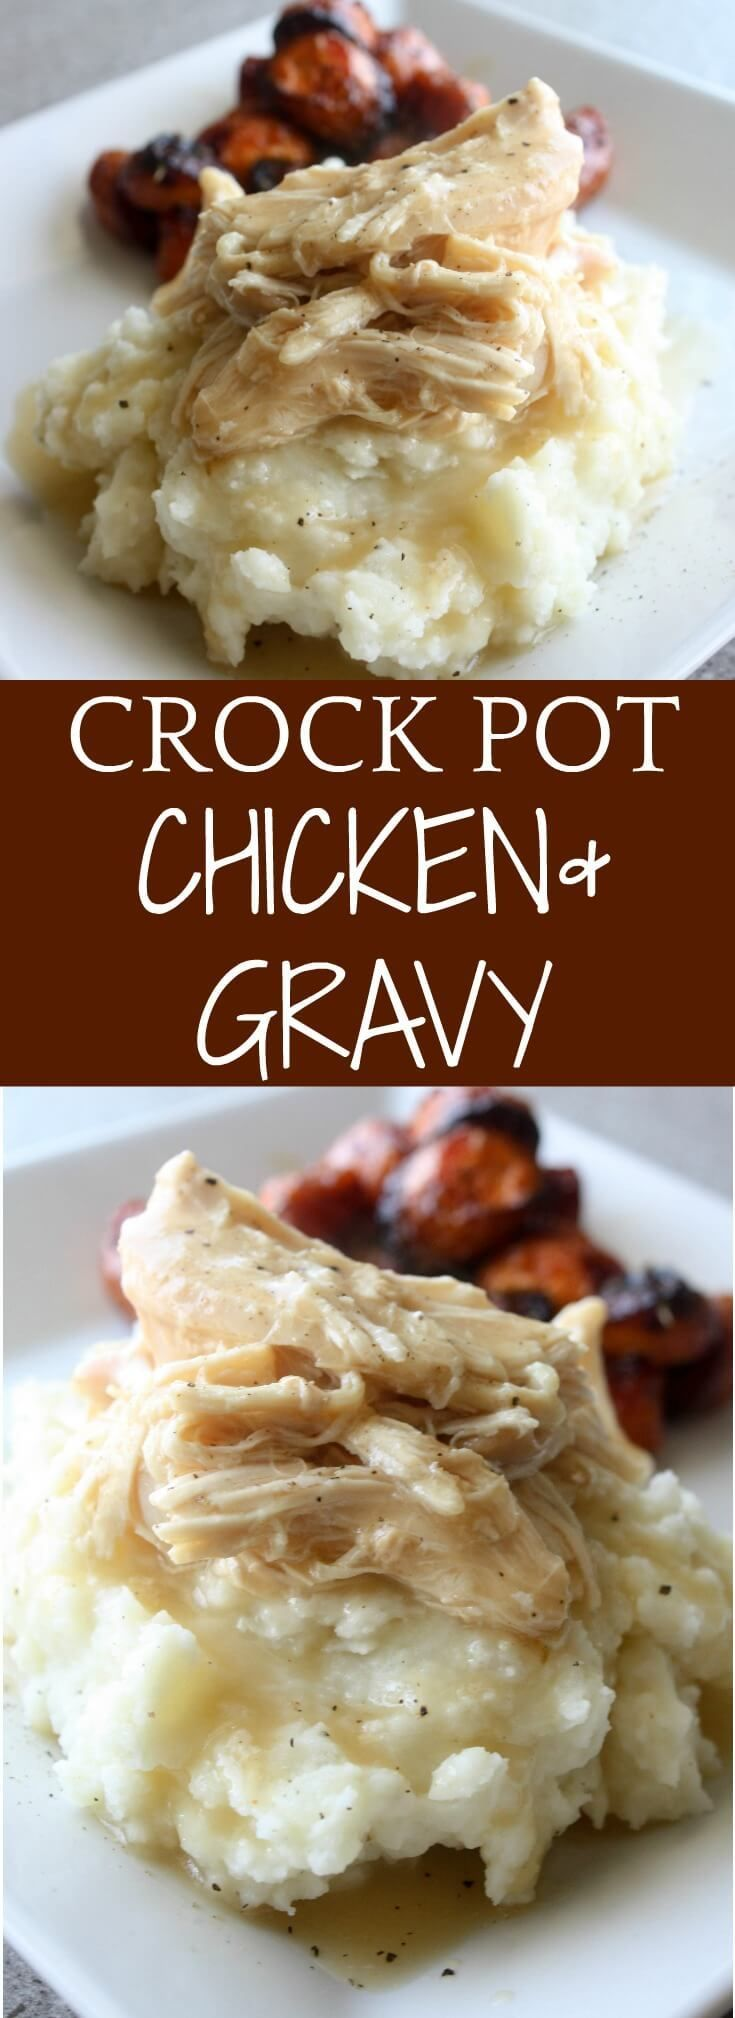 Crock Pot Chicken and Gravy. A comfort food recipe served over a scoop of buttery mashed potatoes.